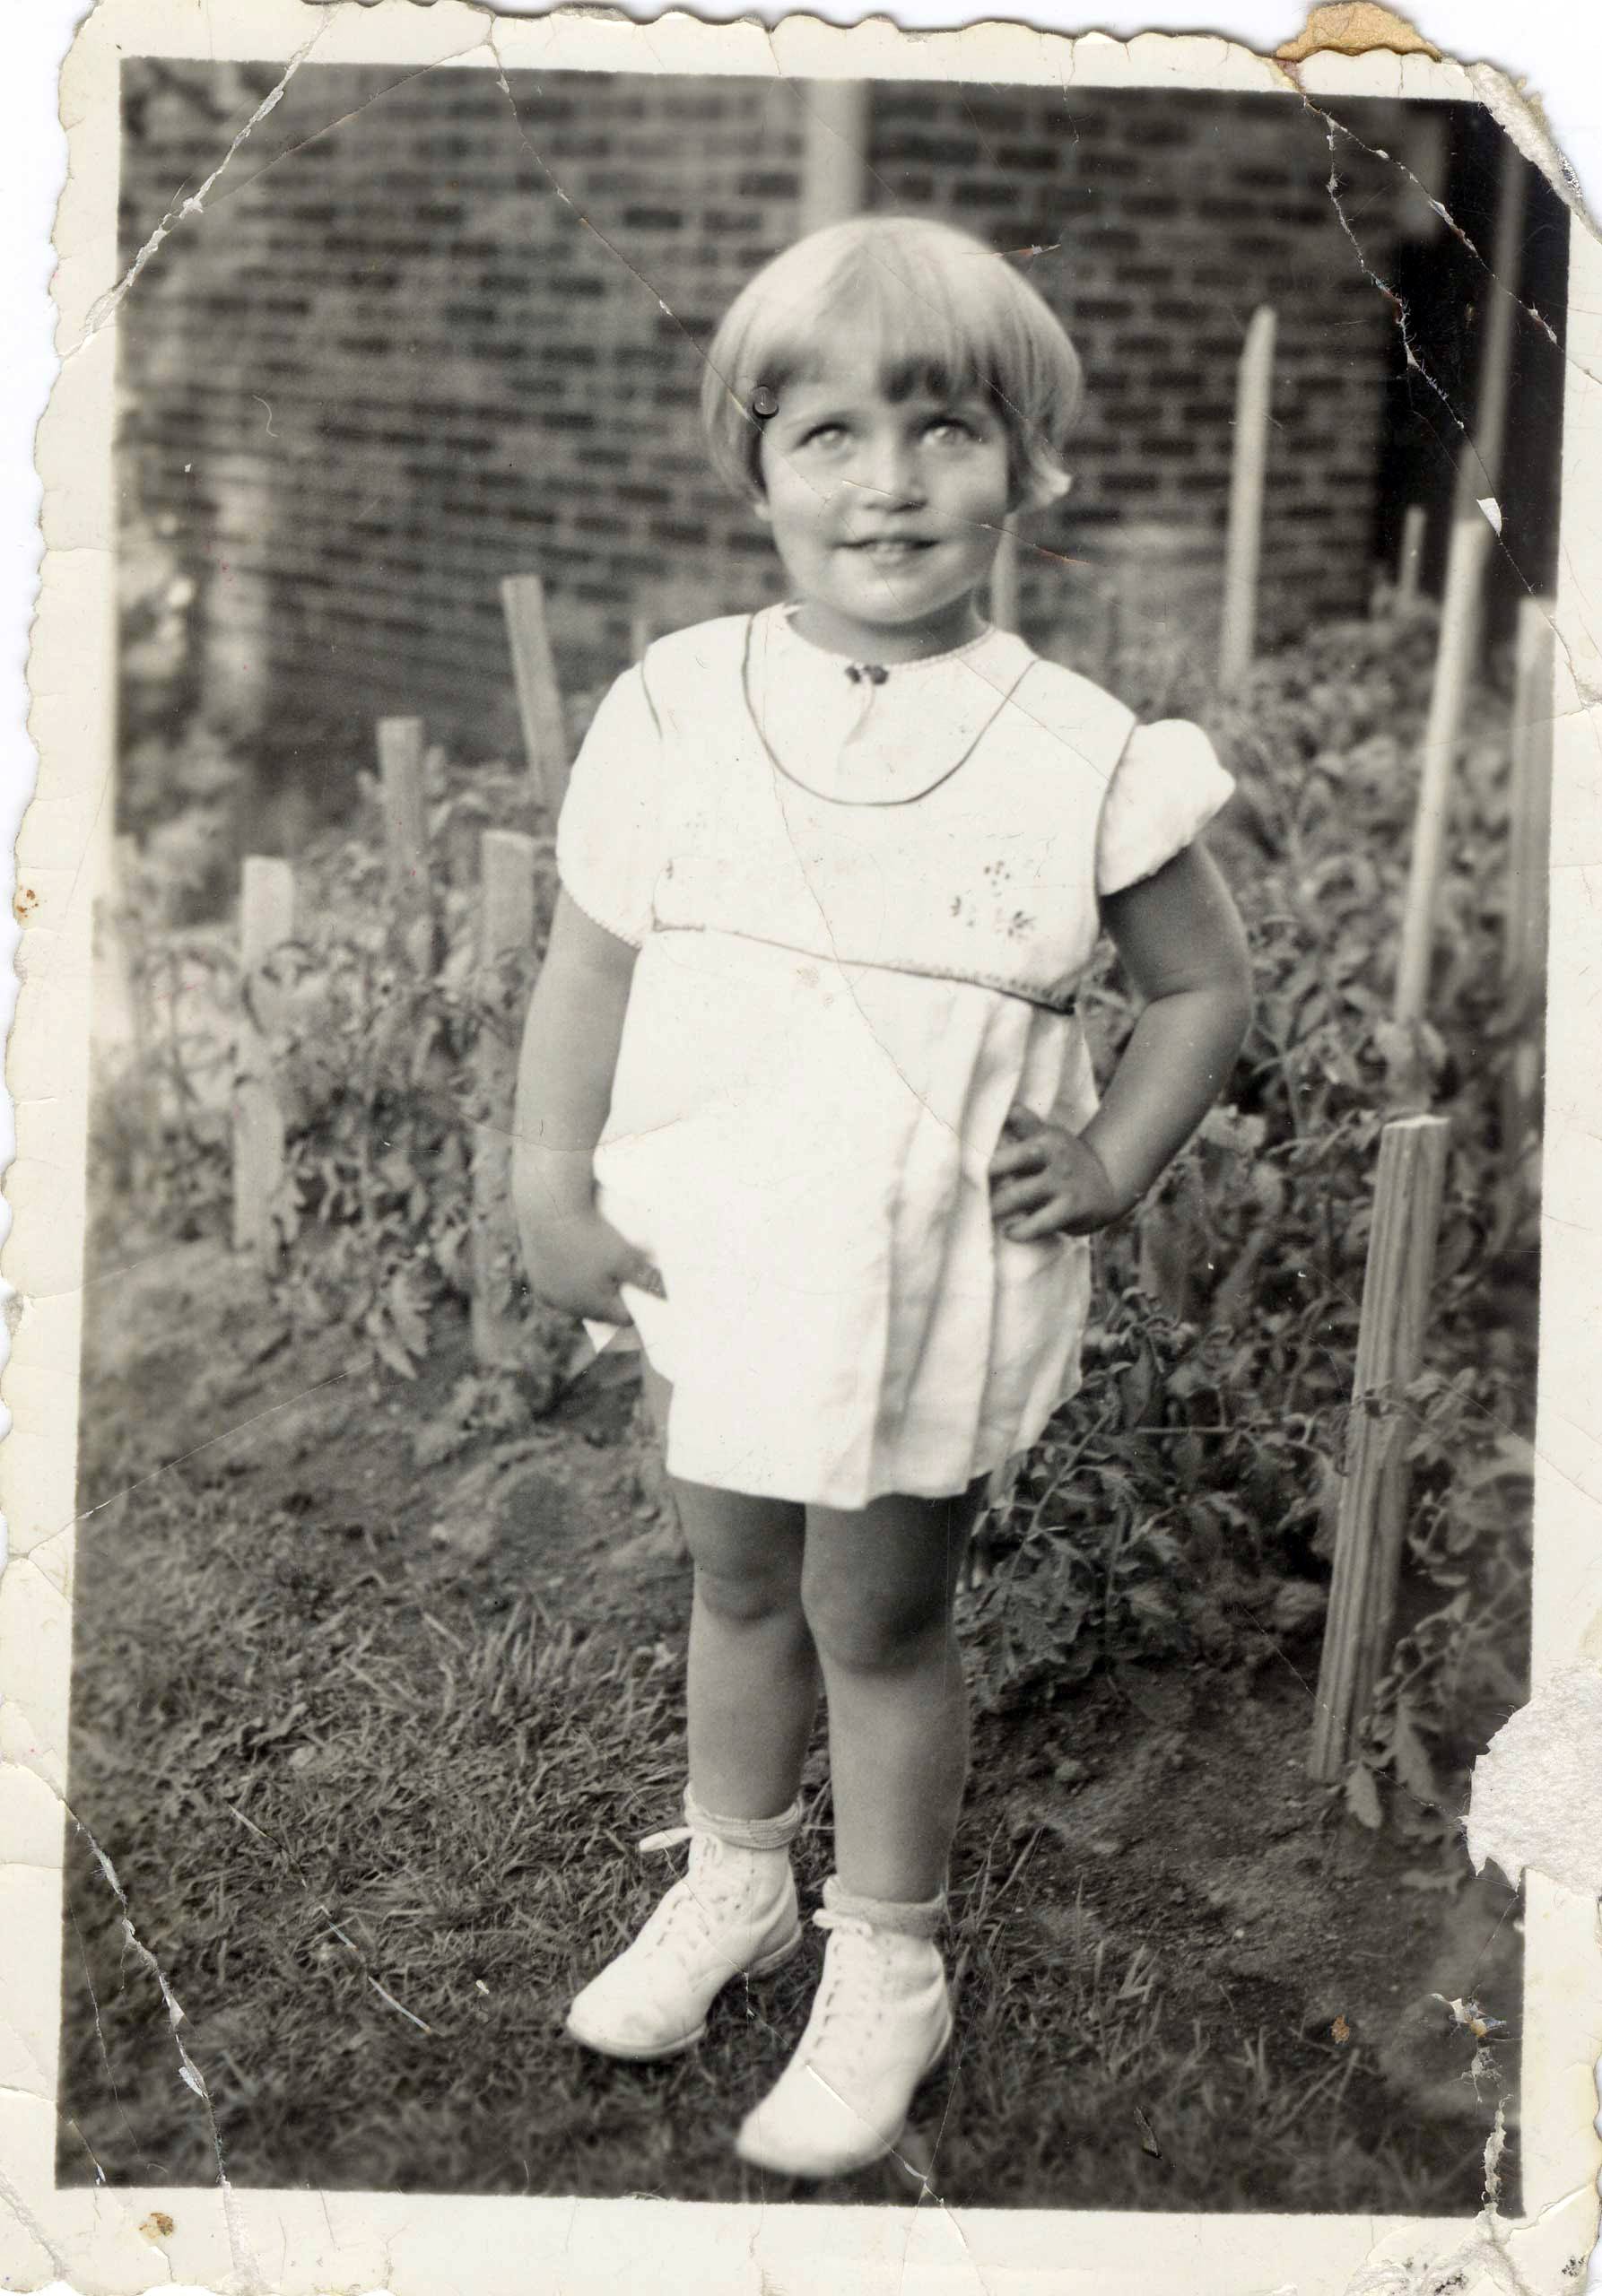 <b>August 2, 1935</b>                                   Childhood photograph of Ruth Bader taken when she was two years old.